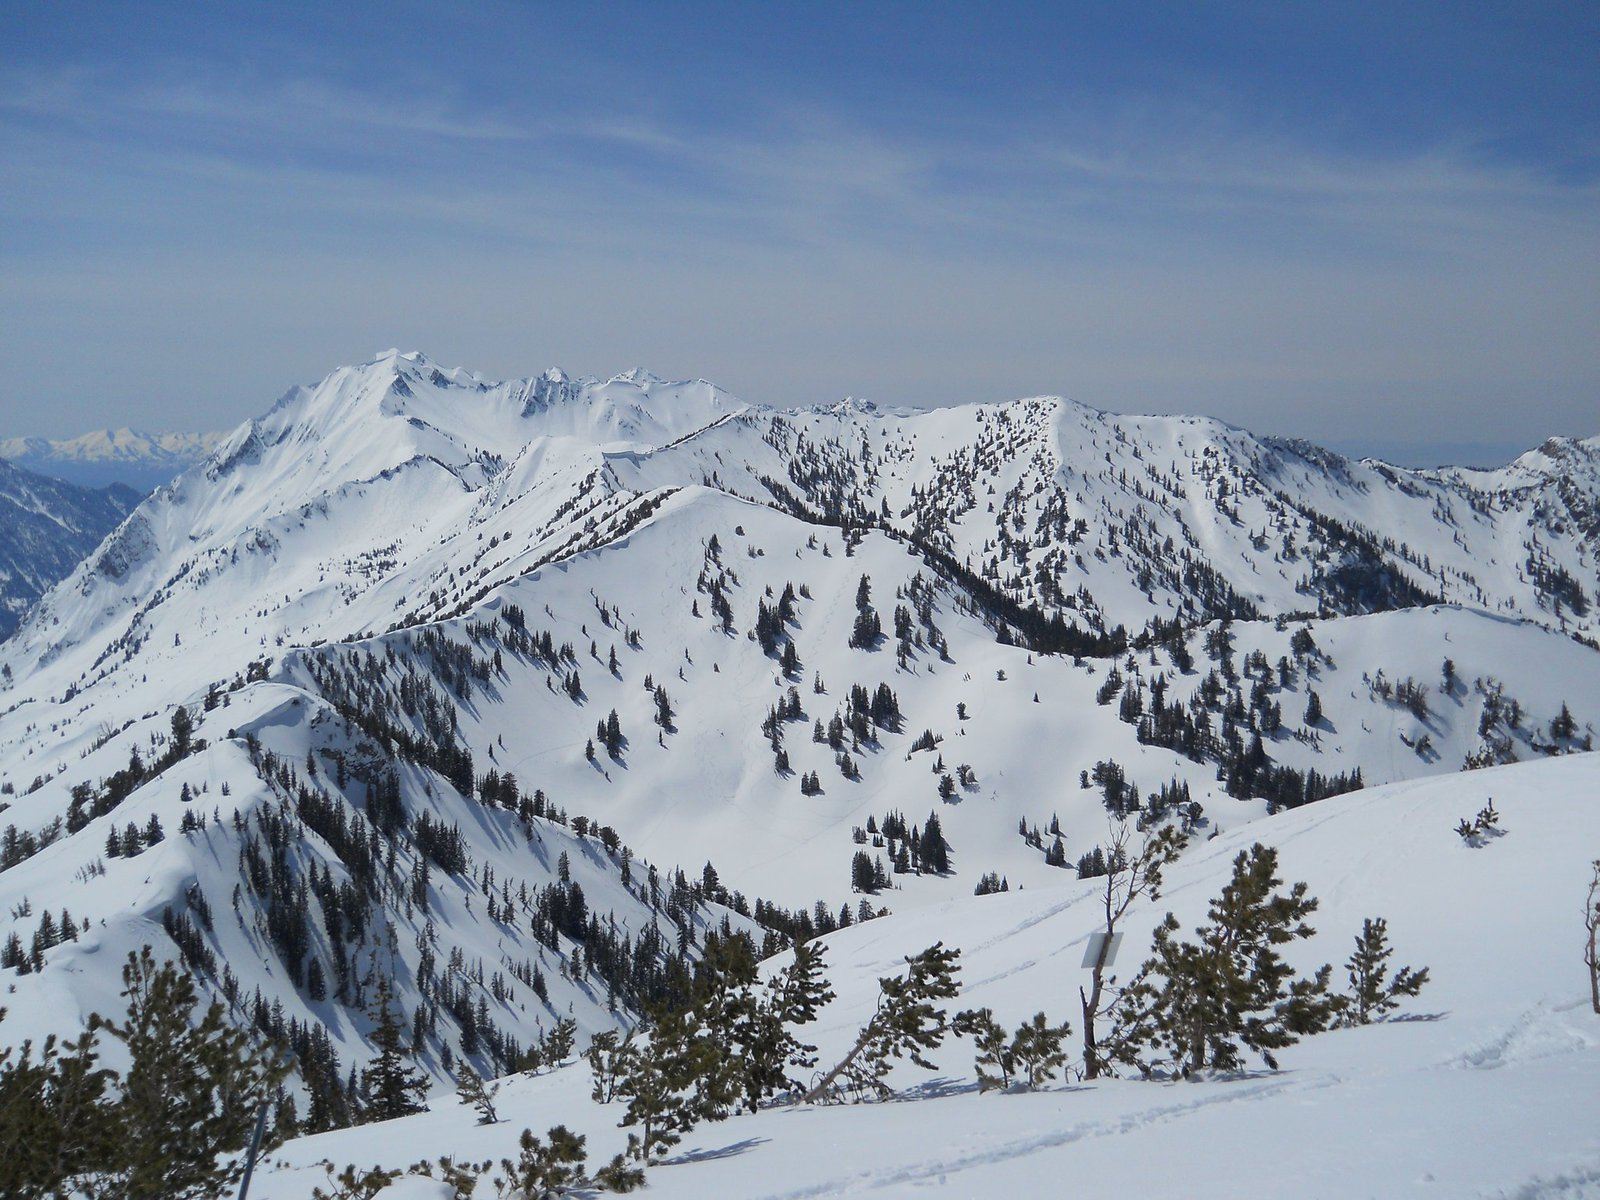 Top of grizzly gulch